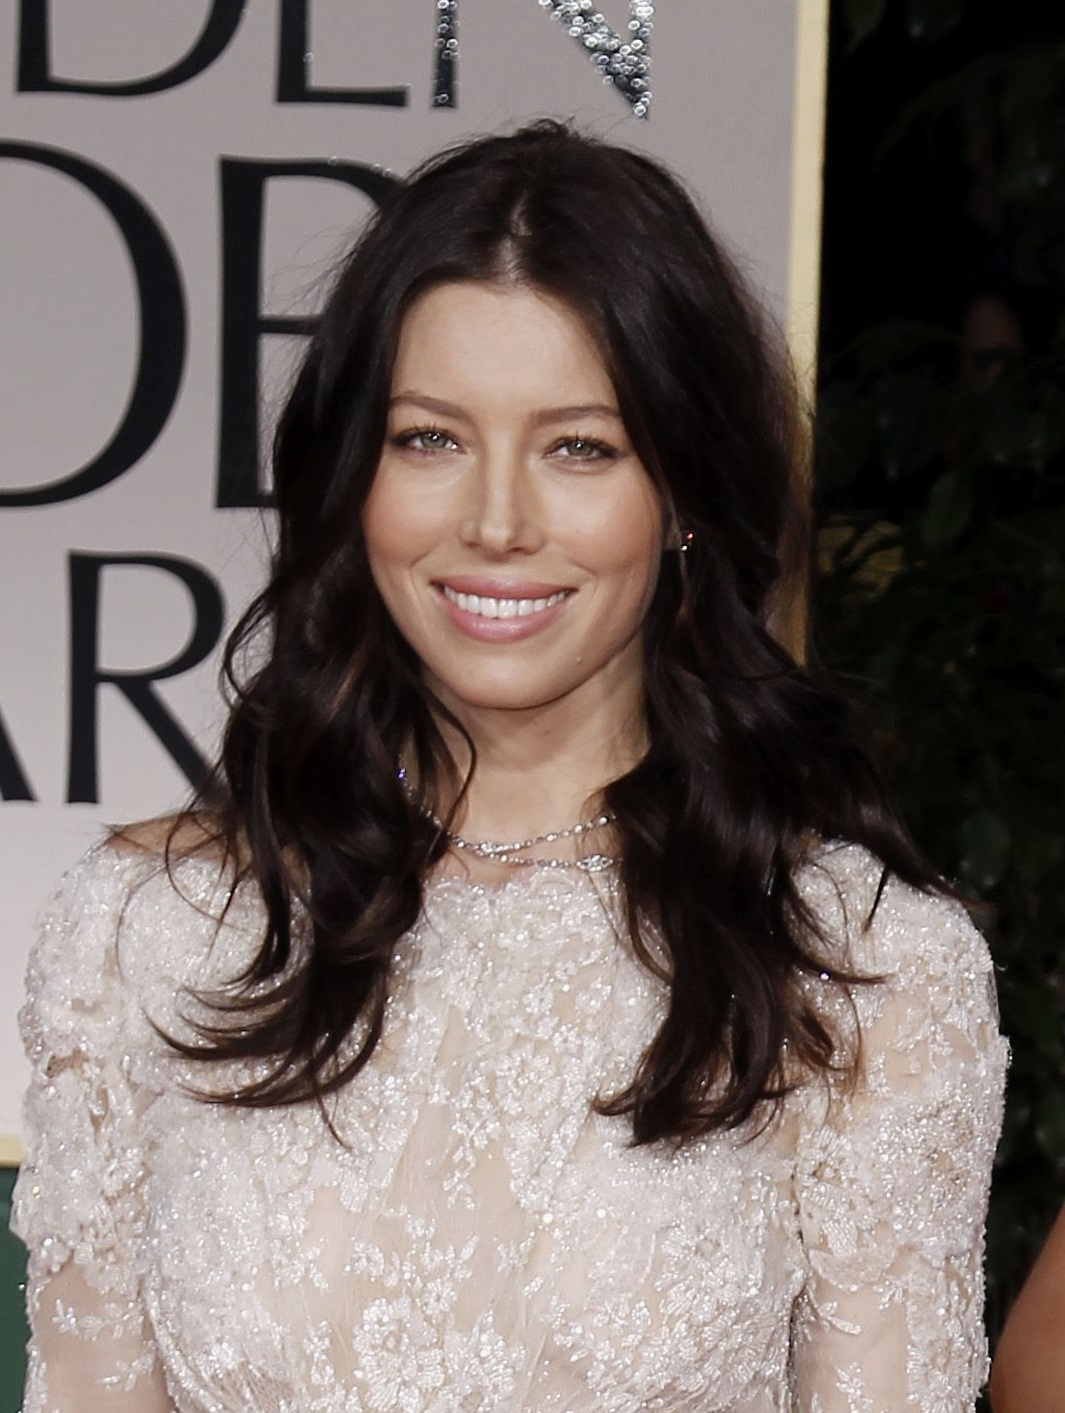 http://3.bp.blogspot.com/-P6a5SD618Xc/TxdJbmOvaNI/AAAAAAAACkM/4sDylYW9D0s/s1600/www-bruce-juice-com_CU-Jessica-Biel-arrives-at-the-69th-Annual-Golden-Globe-Awards-04.jpg